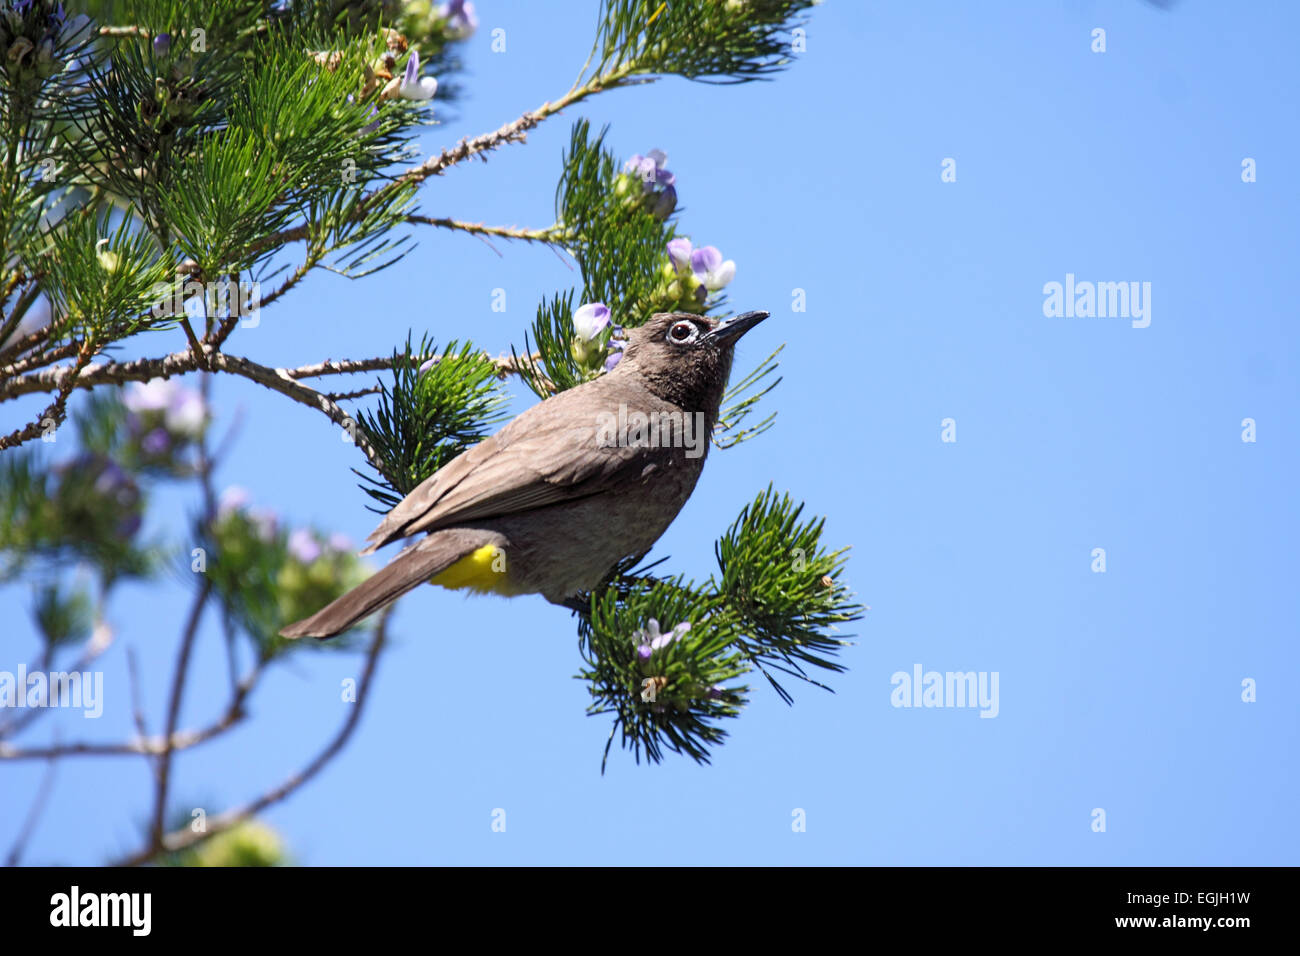 Cape bulbul perched in tree in South Africa Stock Photo